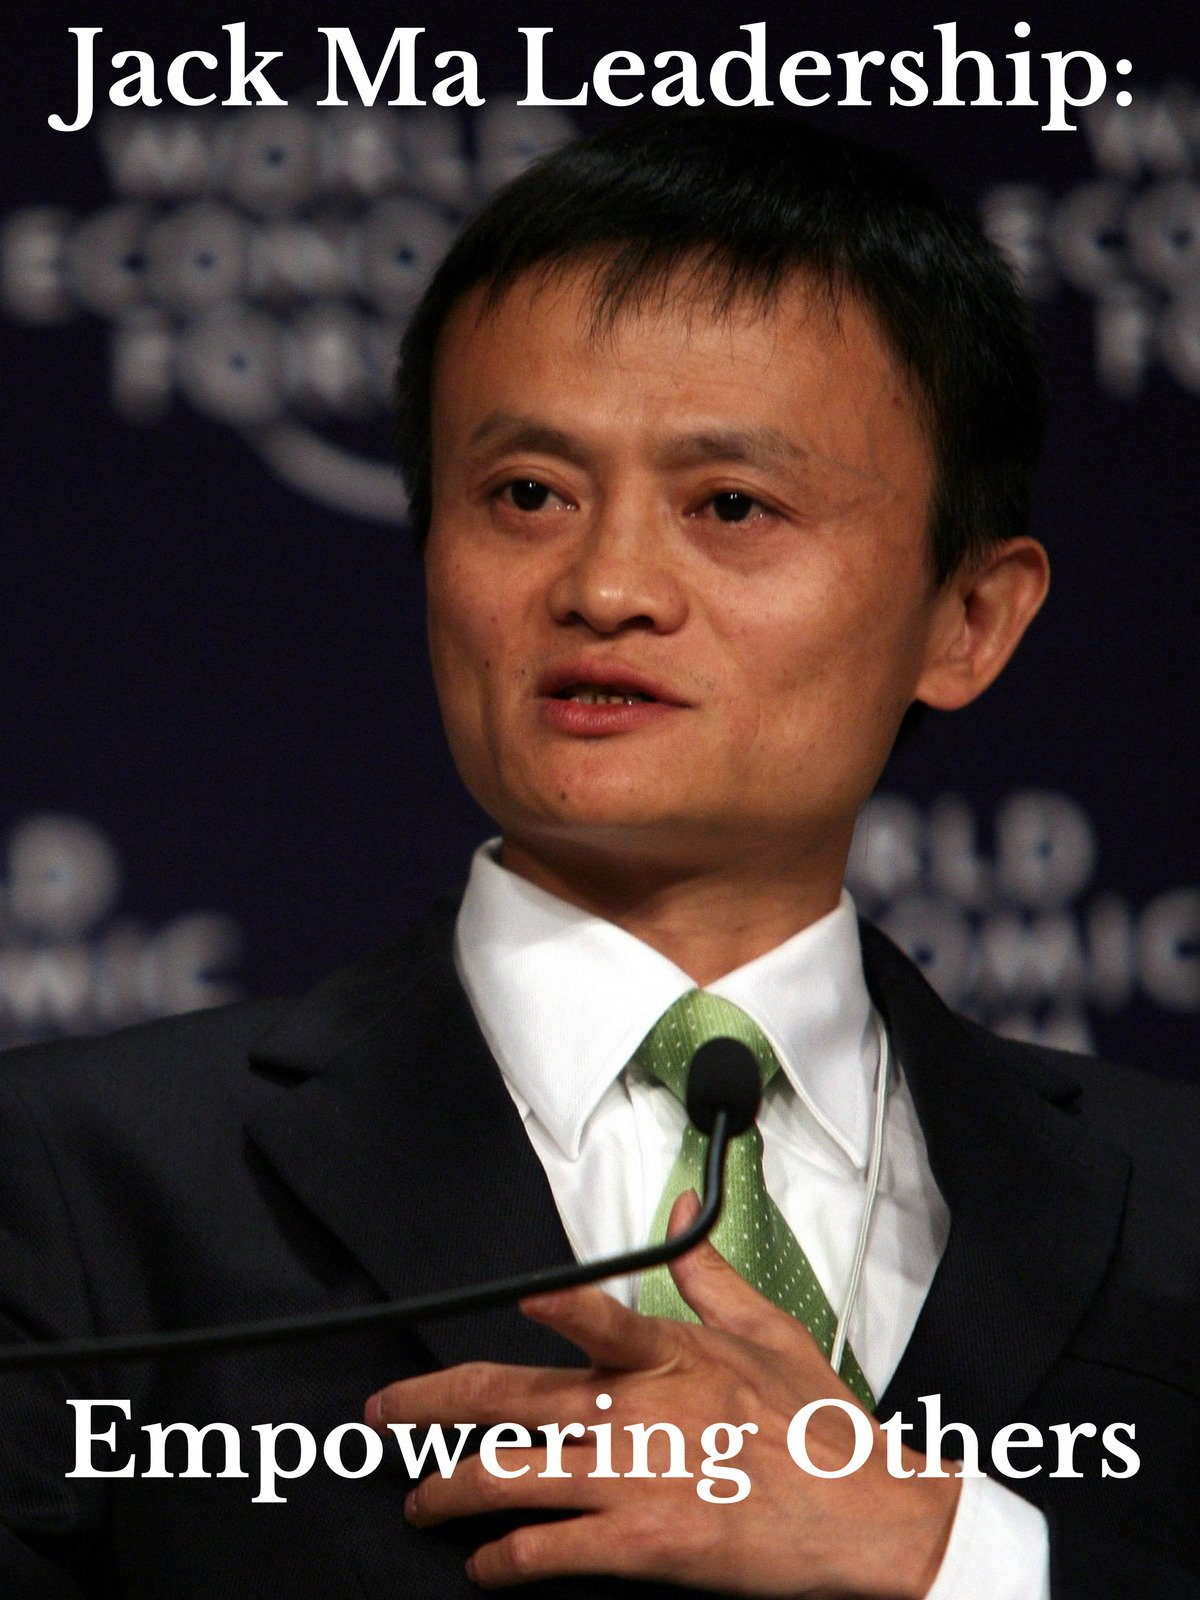 Jack Ma Leadership: Empowering Others